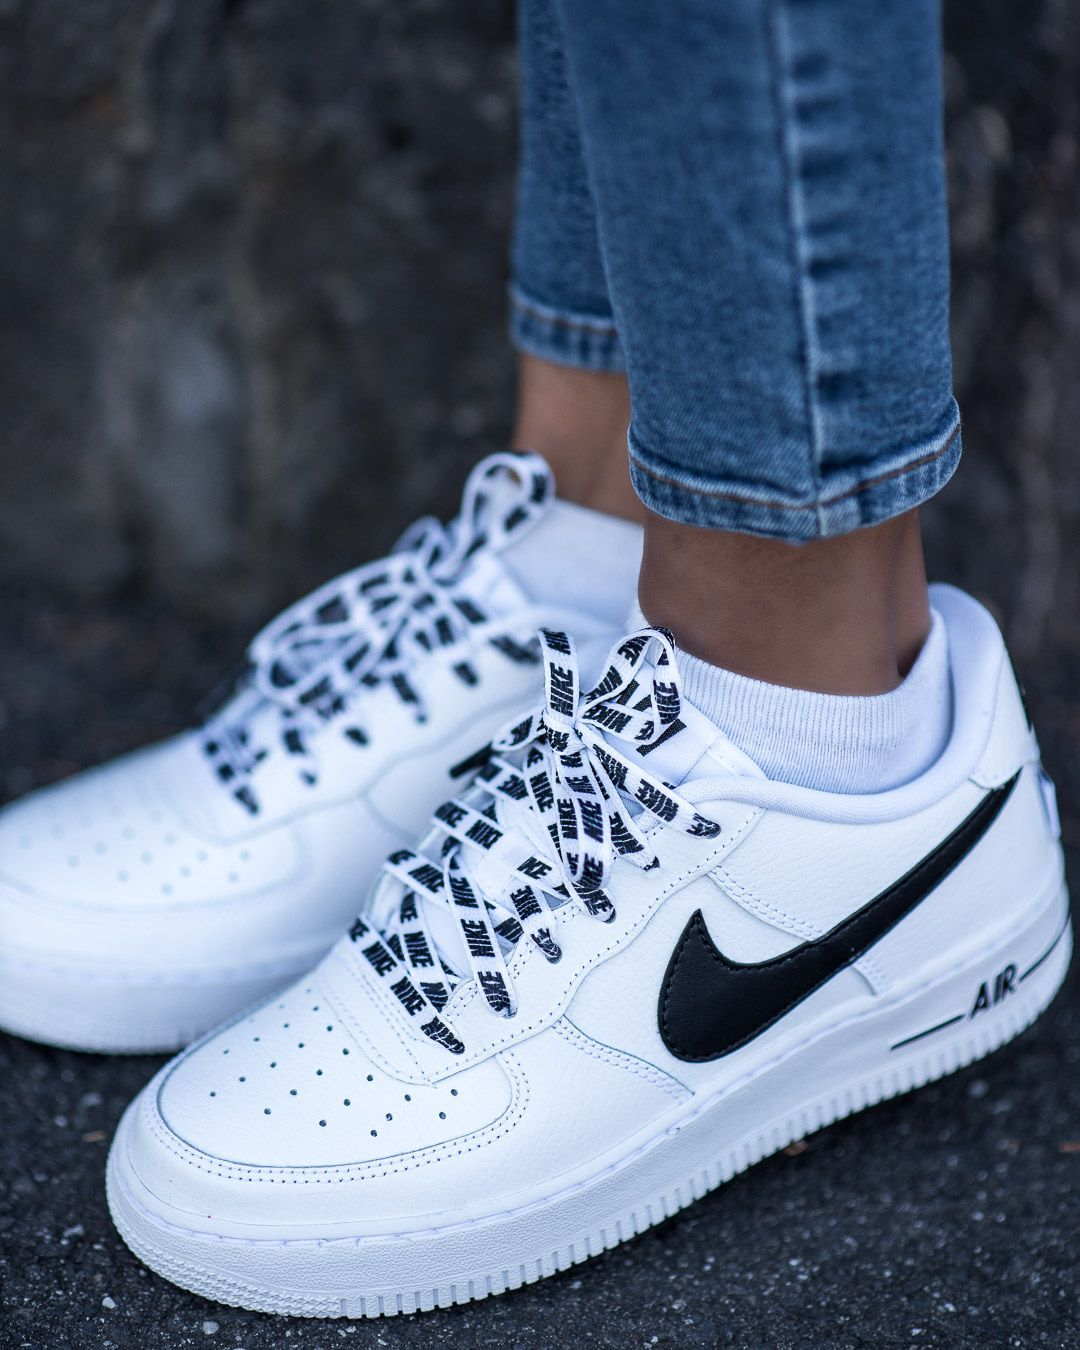 Burnell Cook on in 2019 | Nike shoes | Shoes, Sneakers